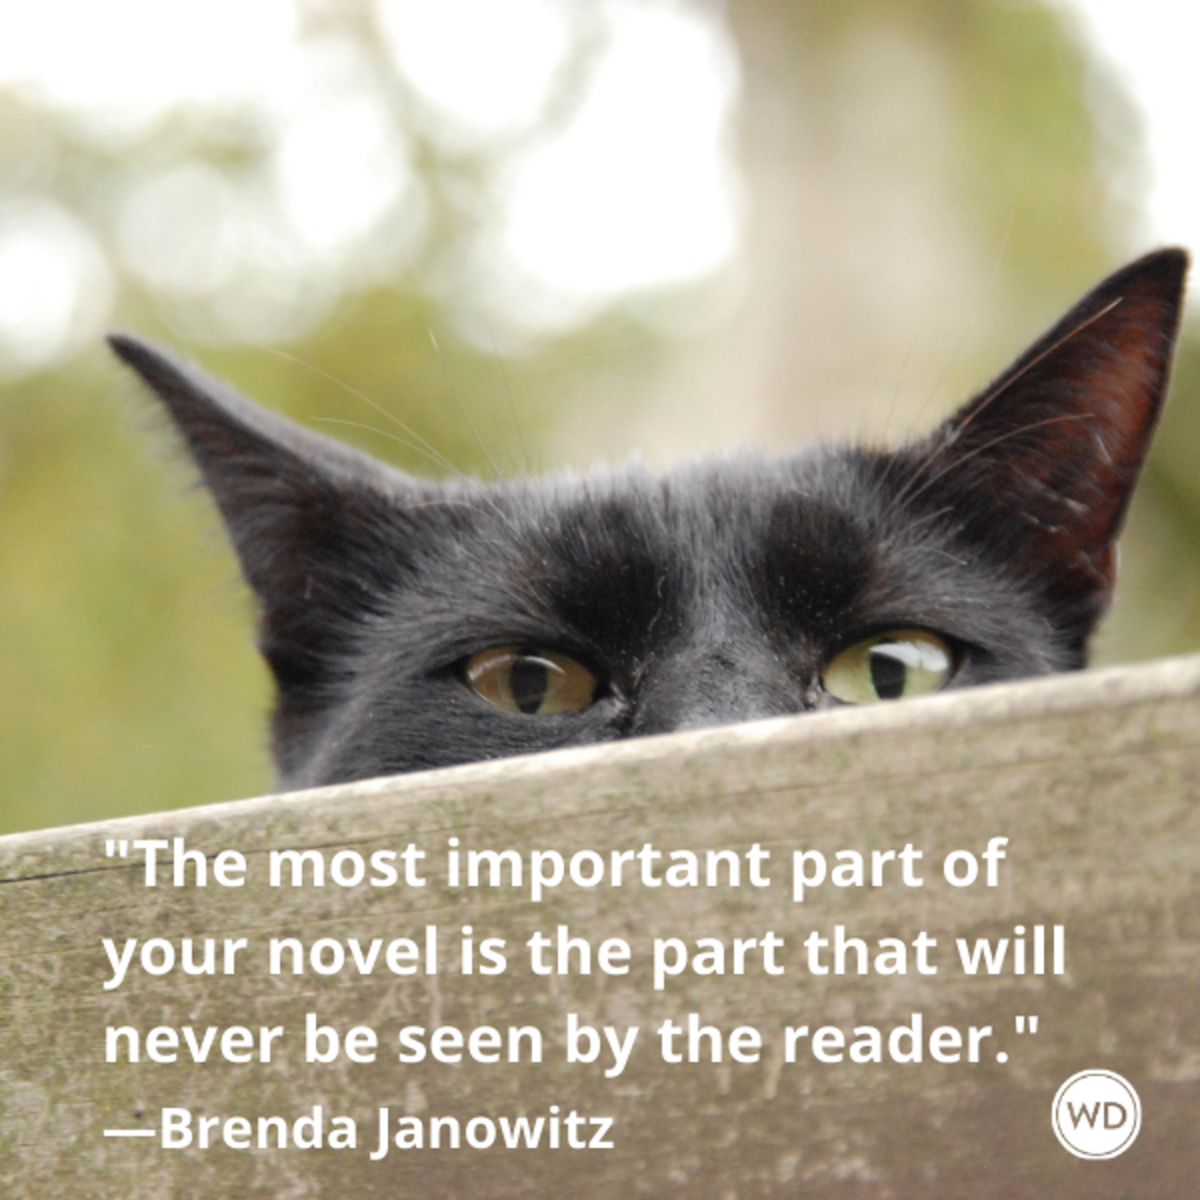 brenda_janowitz_quotes_the_most_important_part_of_your_novel_is_the_part_that_will_never_be_seen_by_the_reader_writing_advice_with_cats